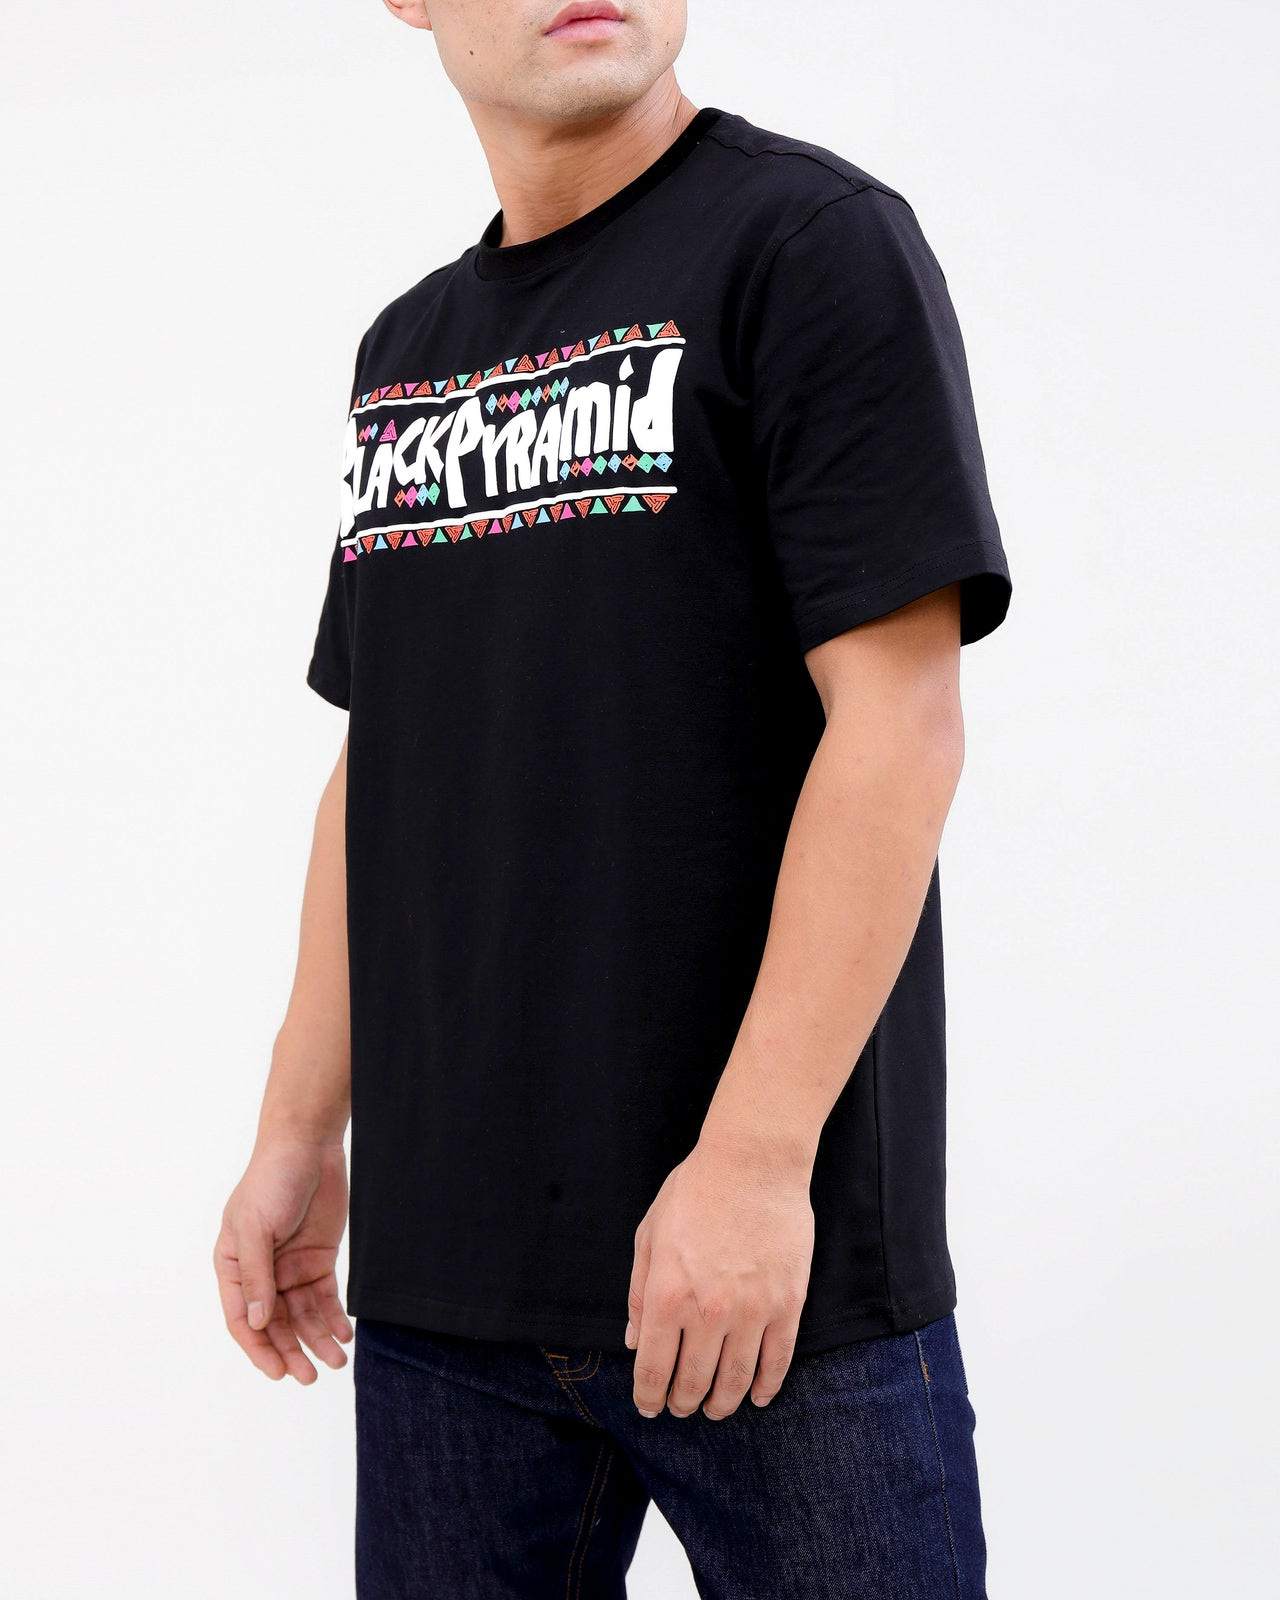 CHOICES SHIRT-COLOR: BLACK